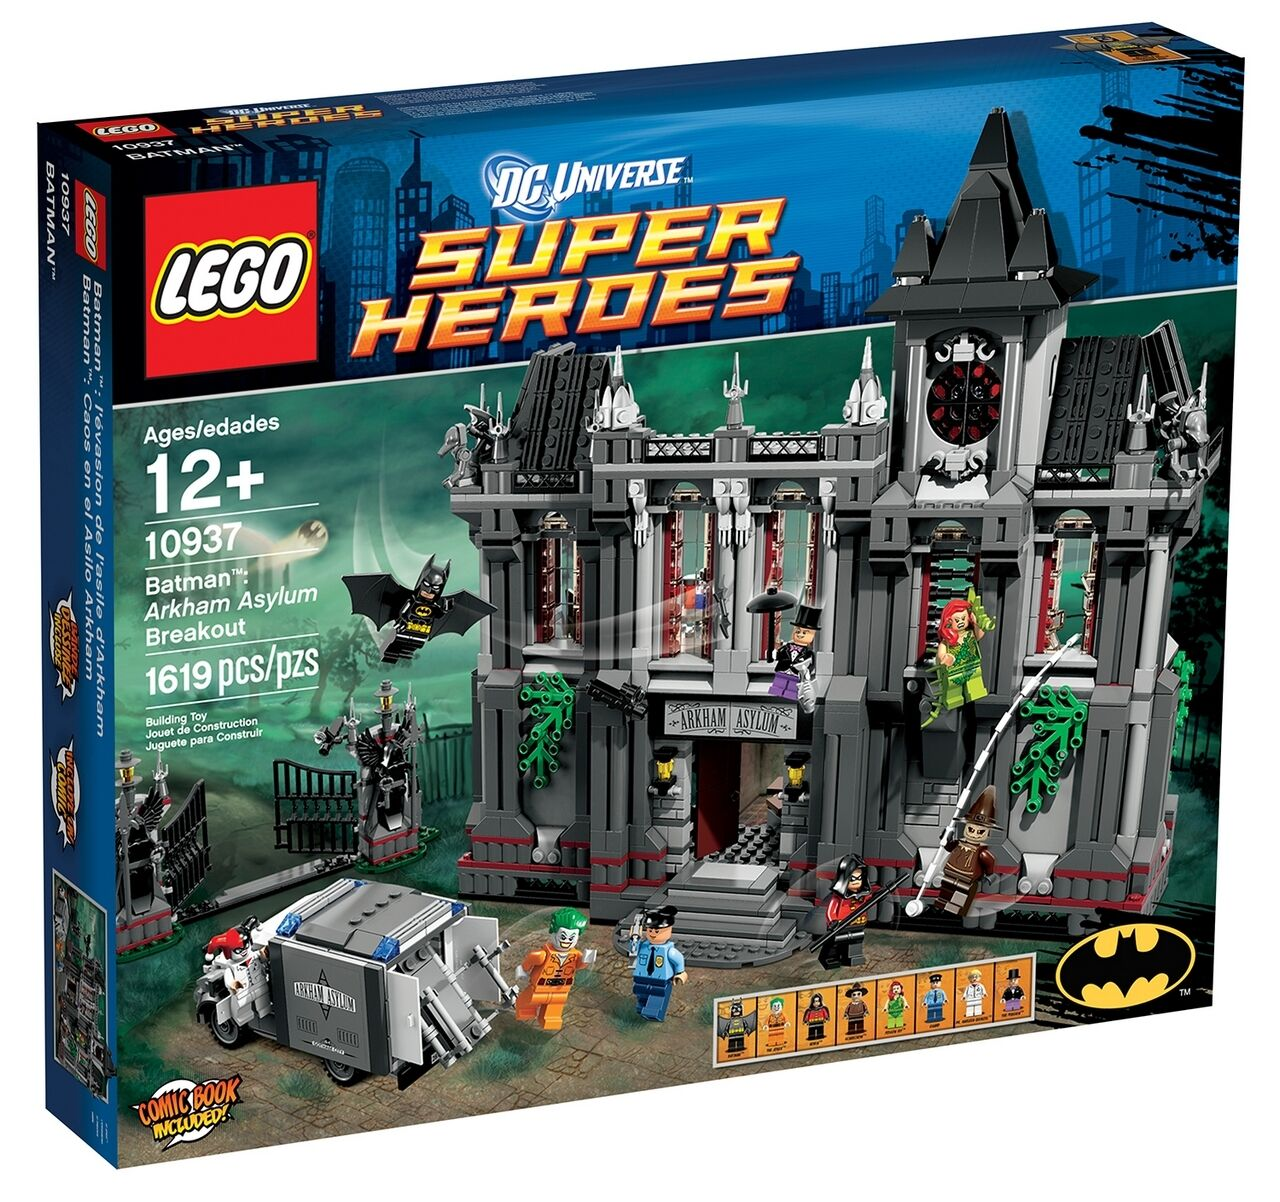 LEGO BATMAN ARKHAM ASYLUM BREAKOUT SET 10937 BRAND NEW IN FACTORY SEALED BOX